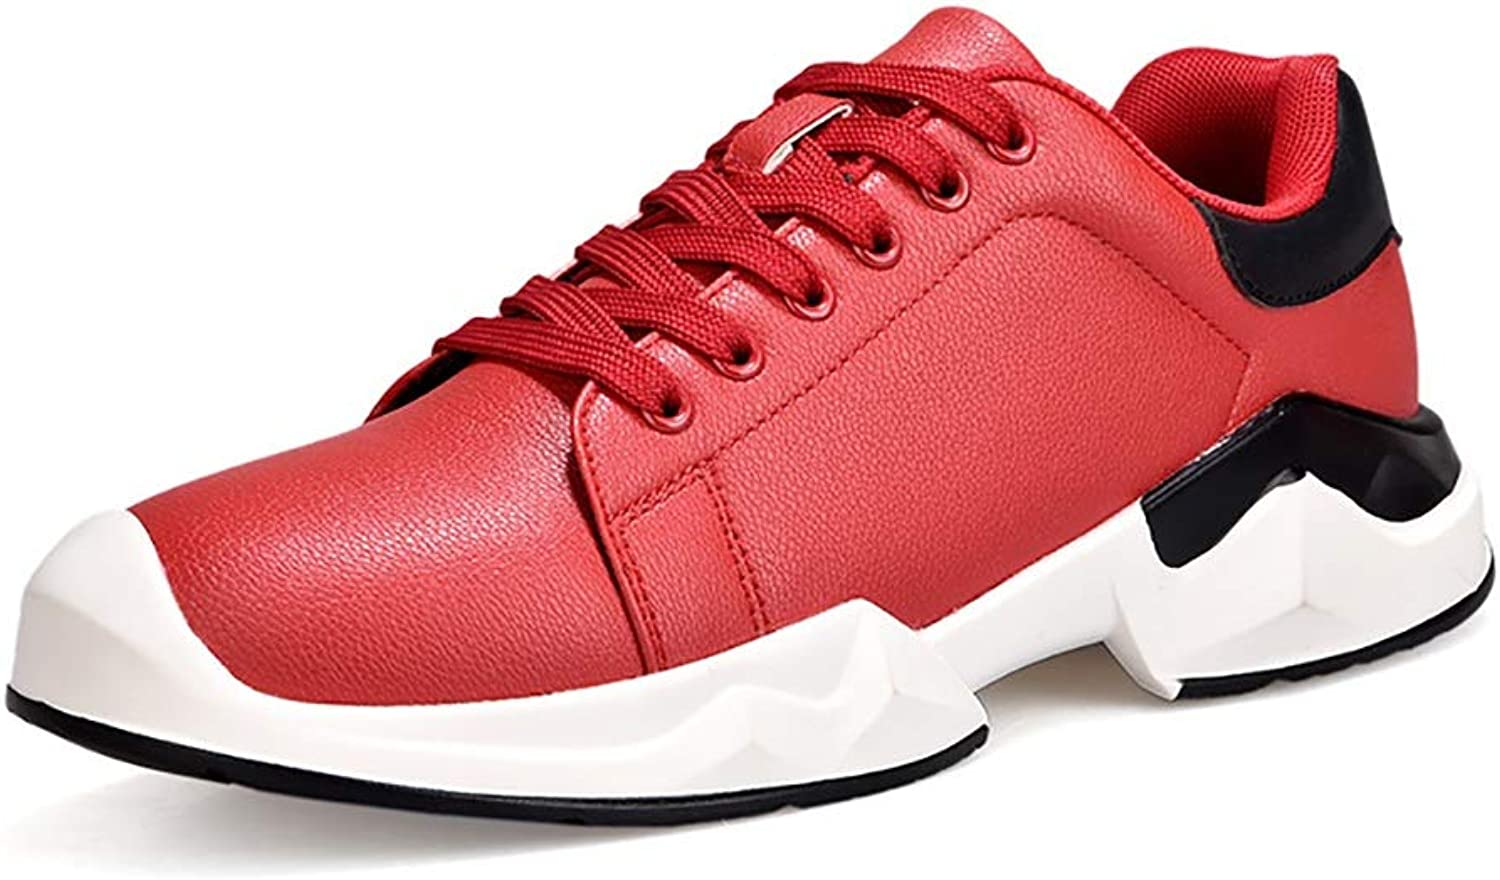 Y-H Men's shoes Spring Fall PU Comfortable Sneakers Student Running shoes Stylish Deck shoes Outdoor Sports shoes White, Red, Black (color   A, Size   42)